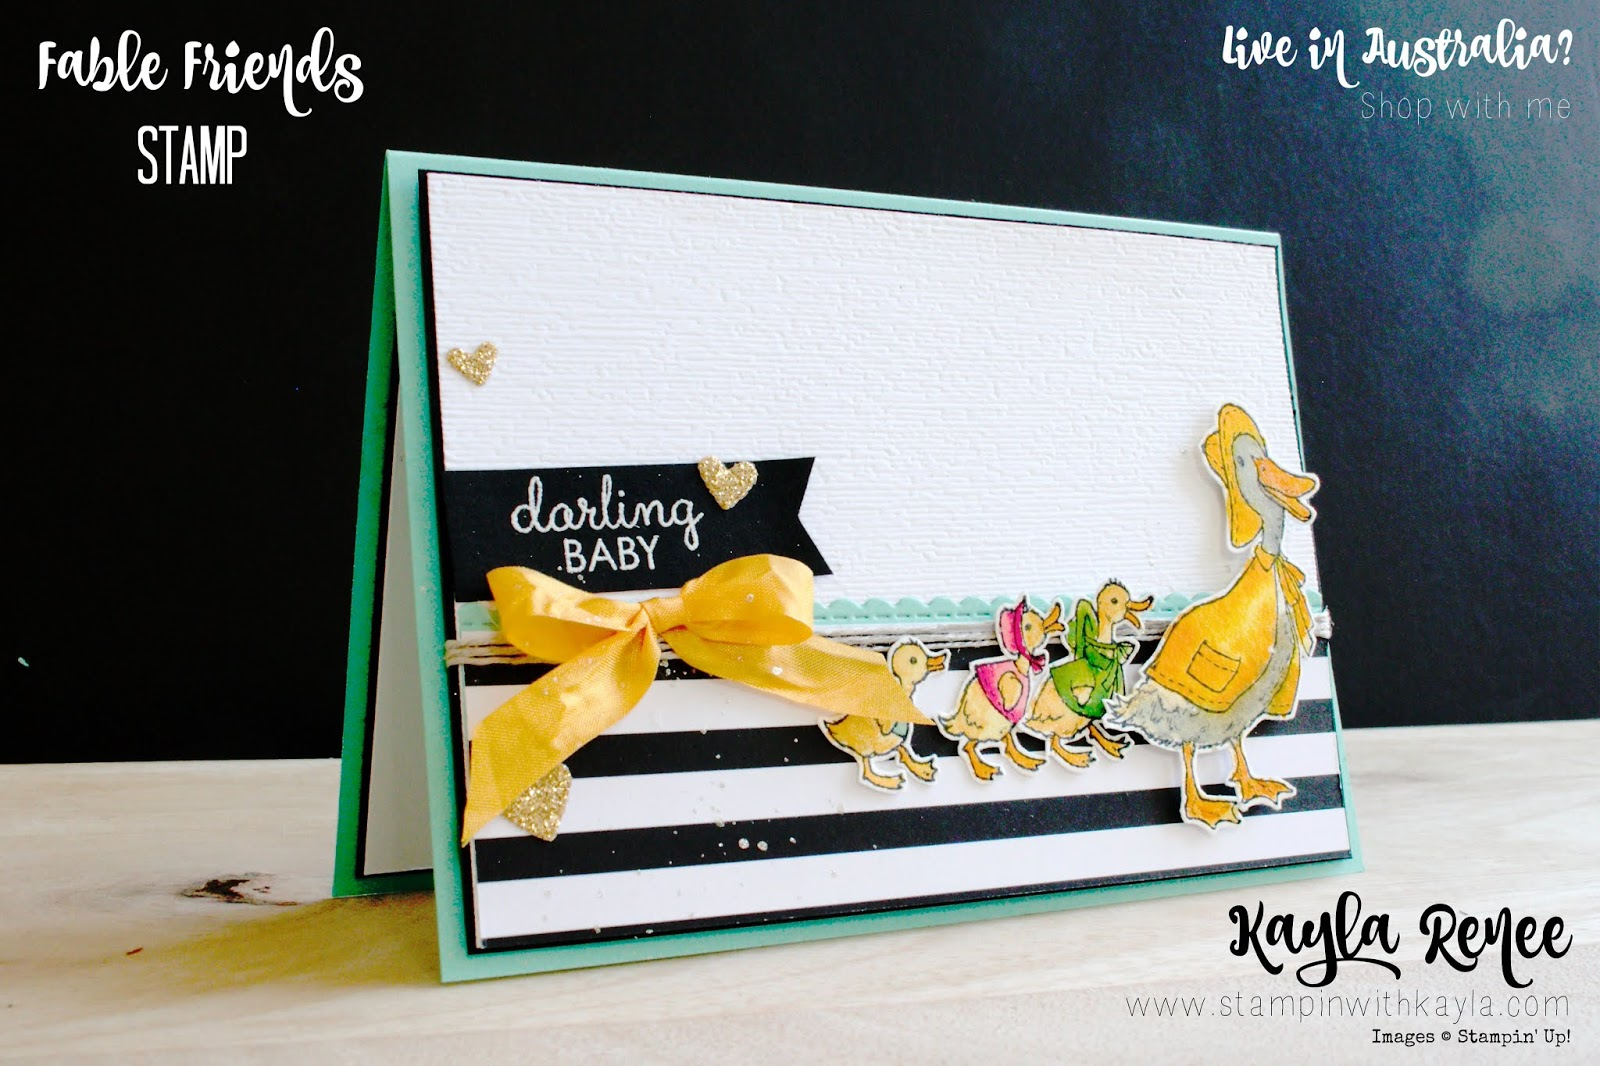 Fable Friends ~ Darling Baby Card